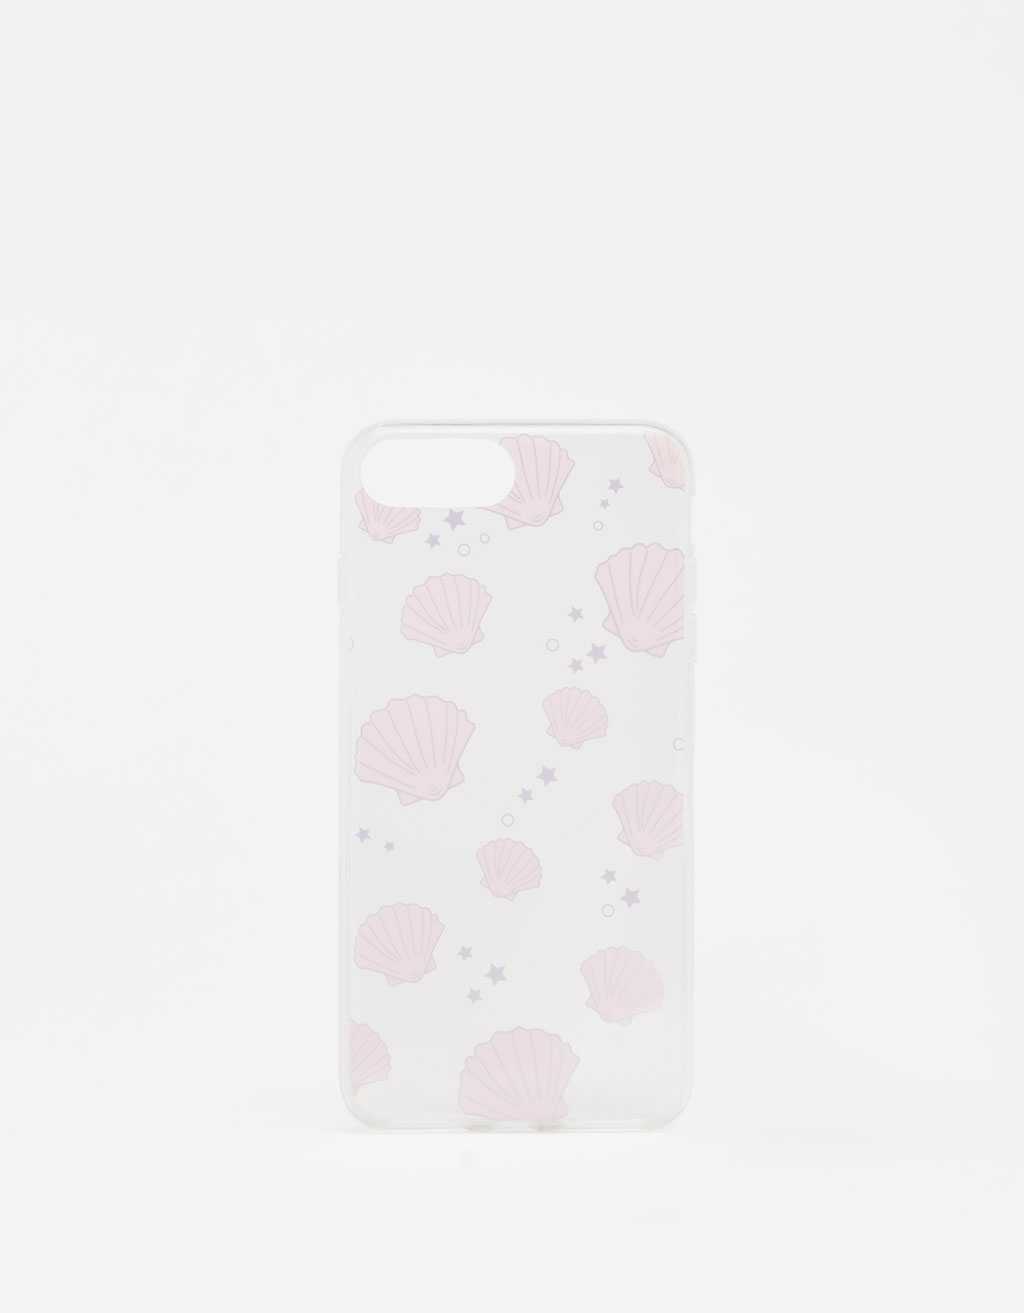 Cover conchiglie iPhone 6 plus/7 plus/8 plus